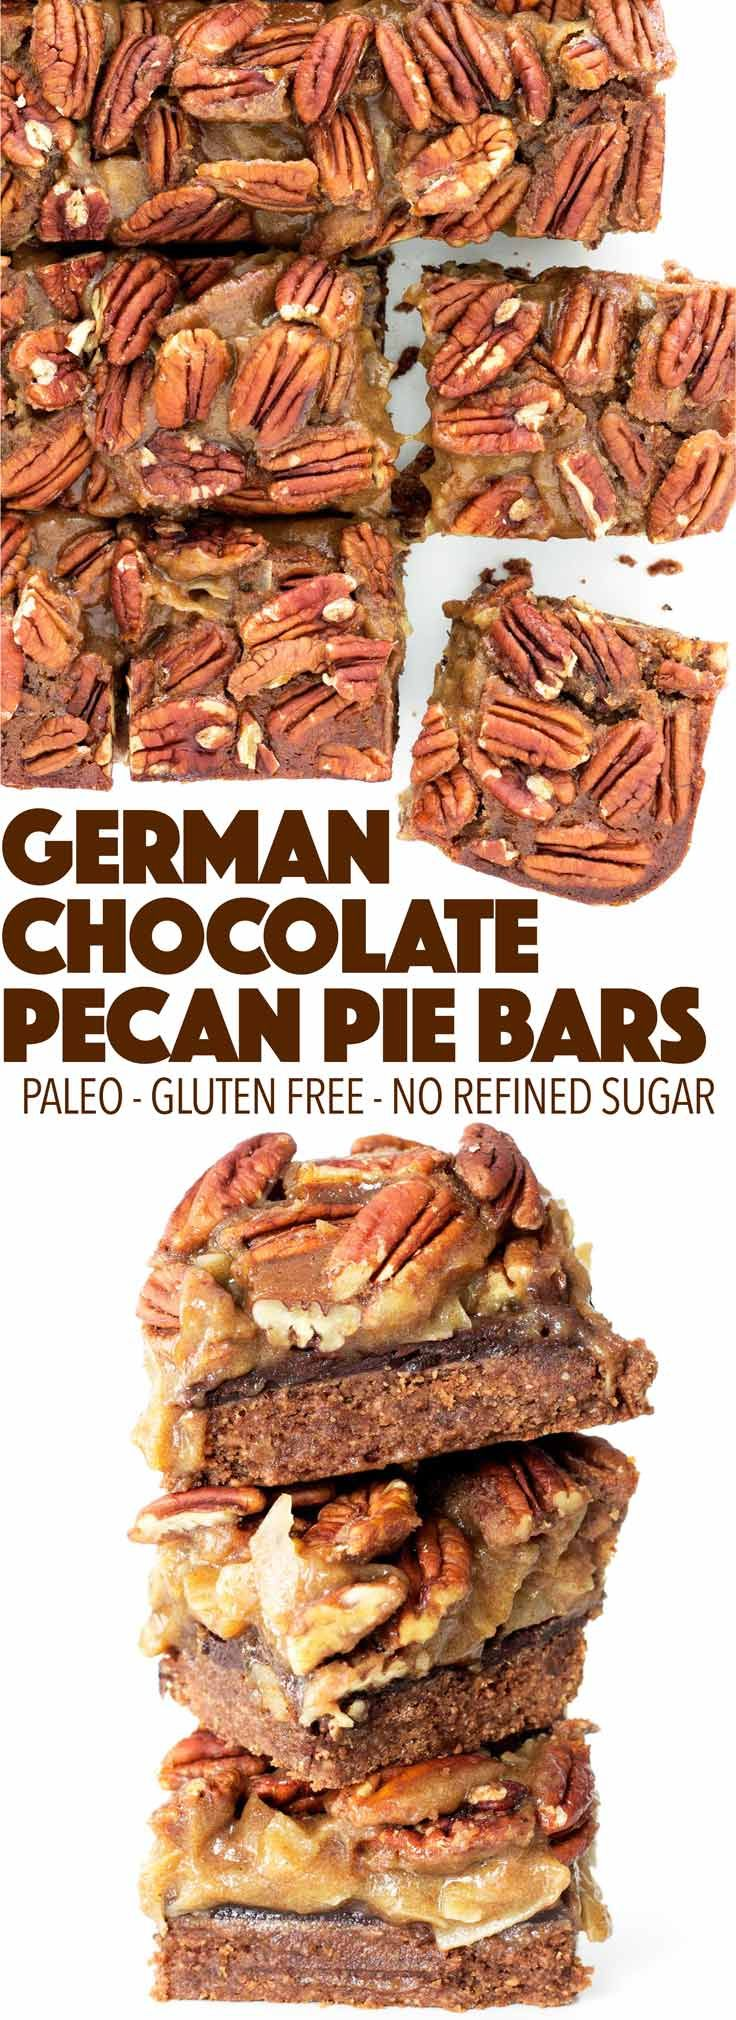 Pecan pie meets German chocolate cake! This healthy holiday dessert is perfect for Thanksgiving or Christmas. Paleo, gluten free, and dairy free!